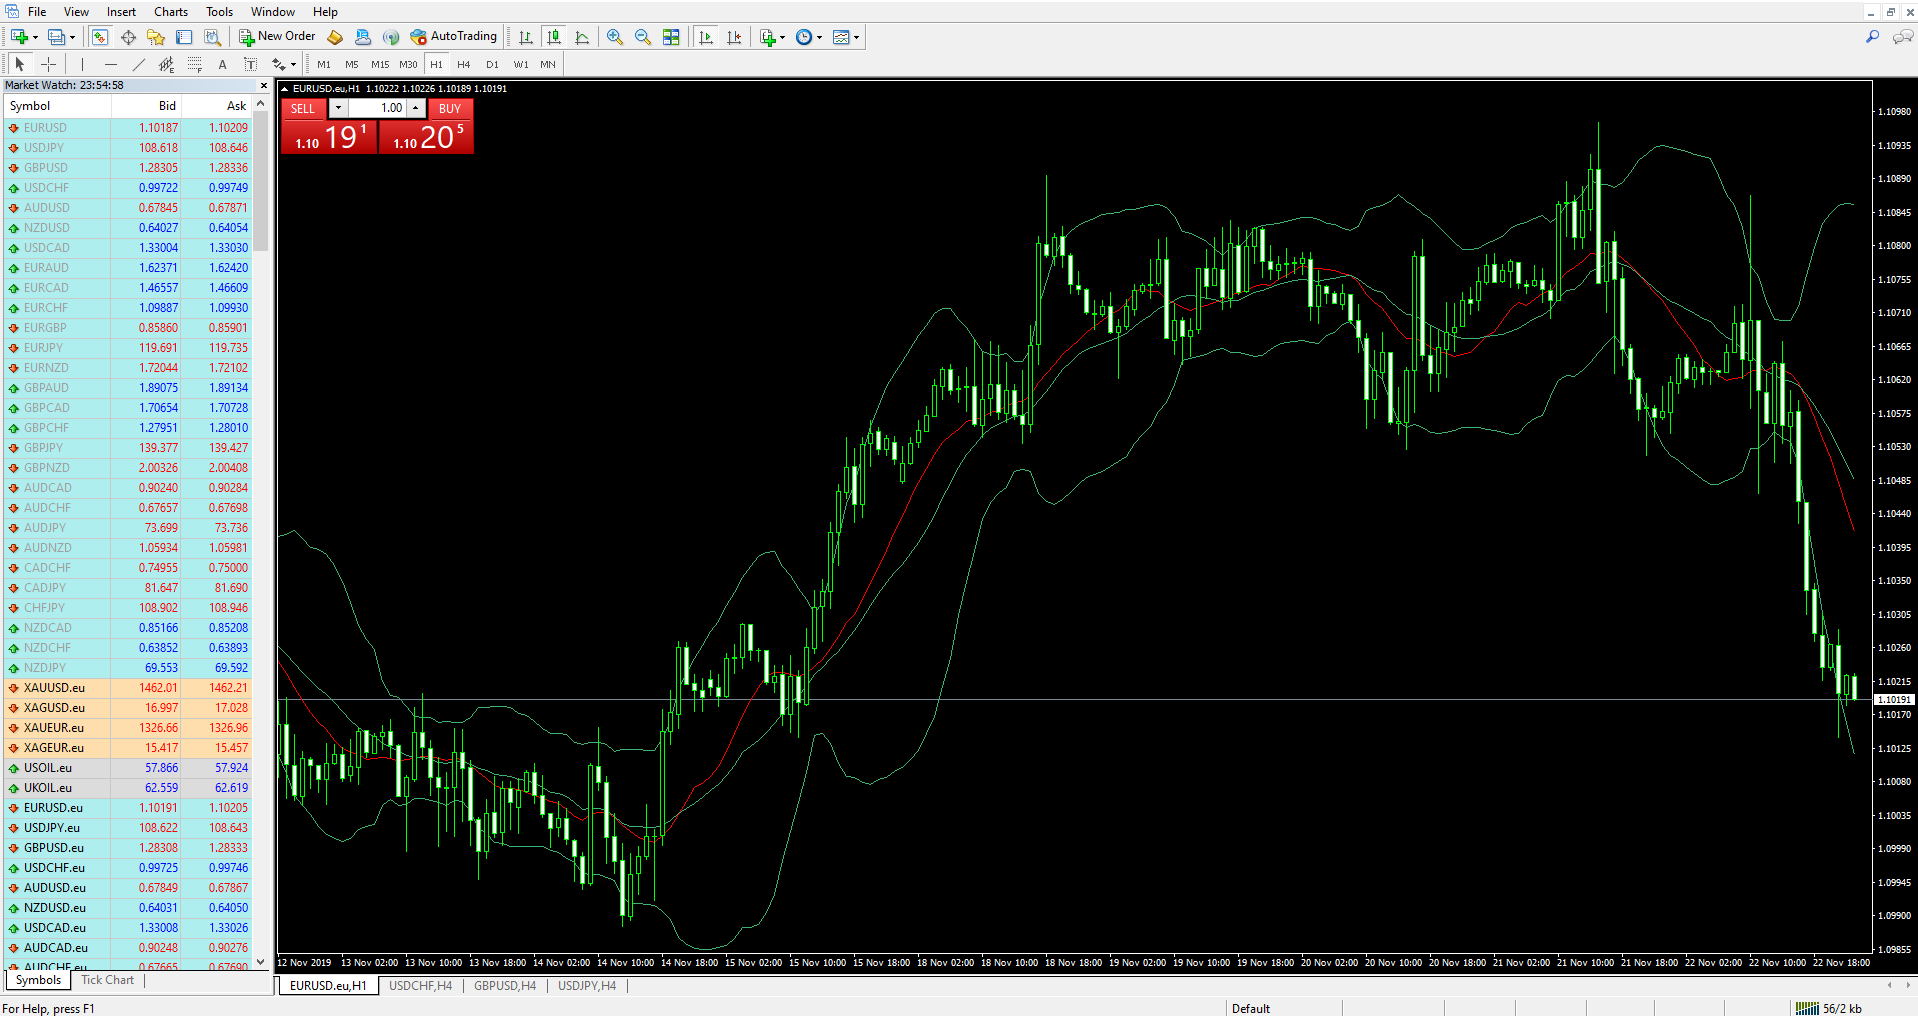 MetaTrader 4 Blackbull Markets